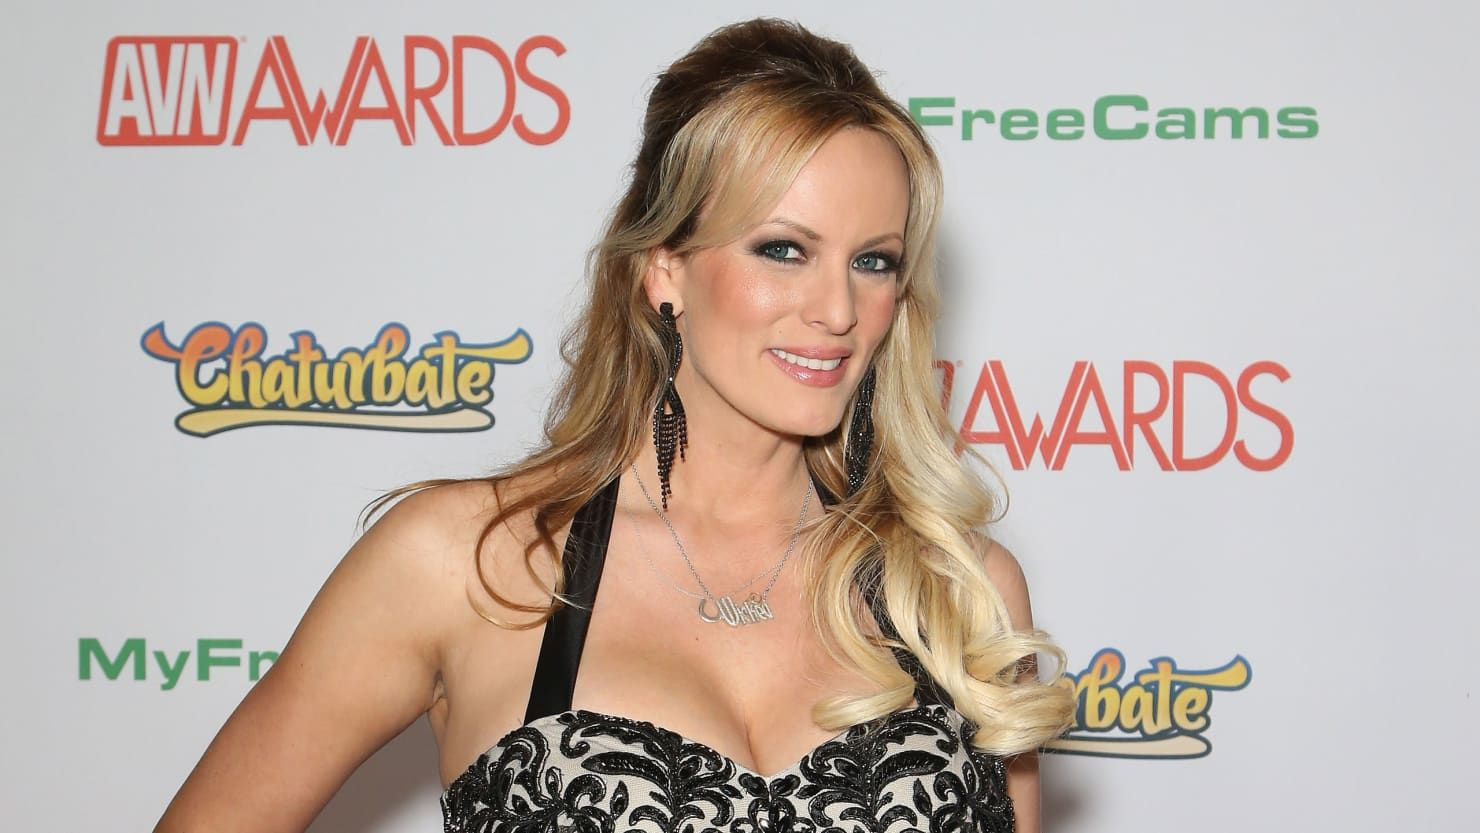 Snapchat Stormy Daniels nude photos 2019